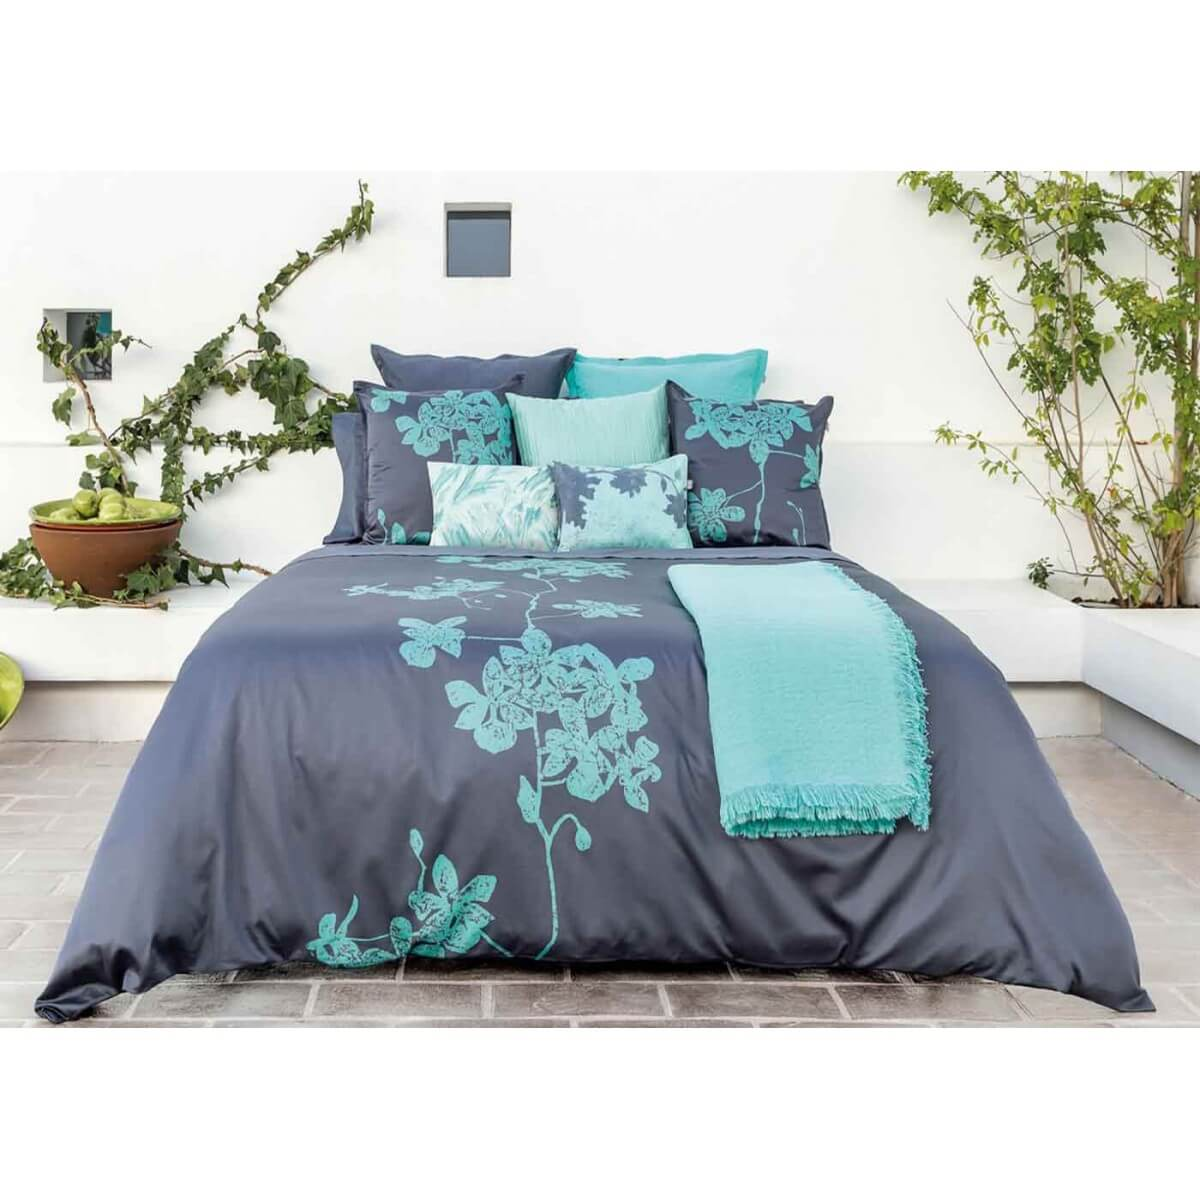 cheap housse de couette vert d eau housse de couette vert mint et bleu with housse de couette. Black Bedroom Furniture Sets. Home Design Ideas